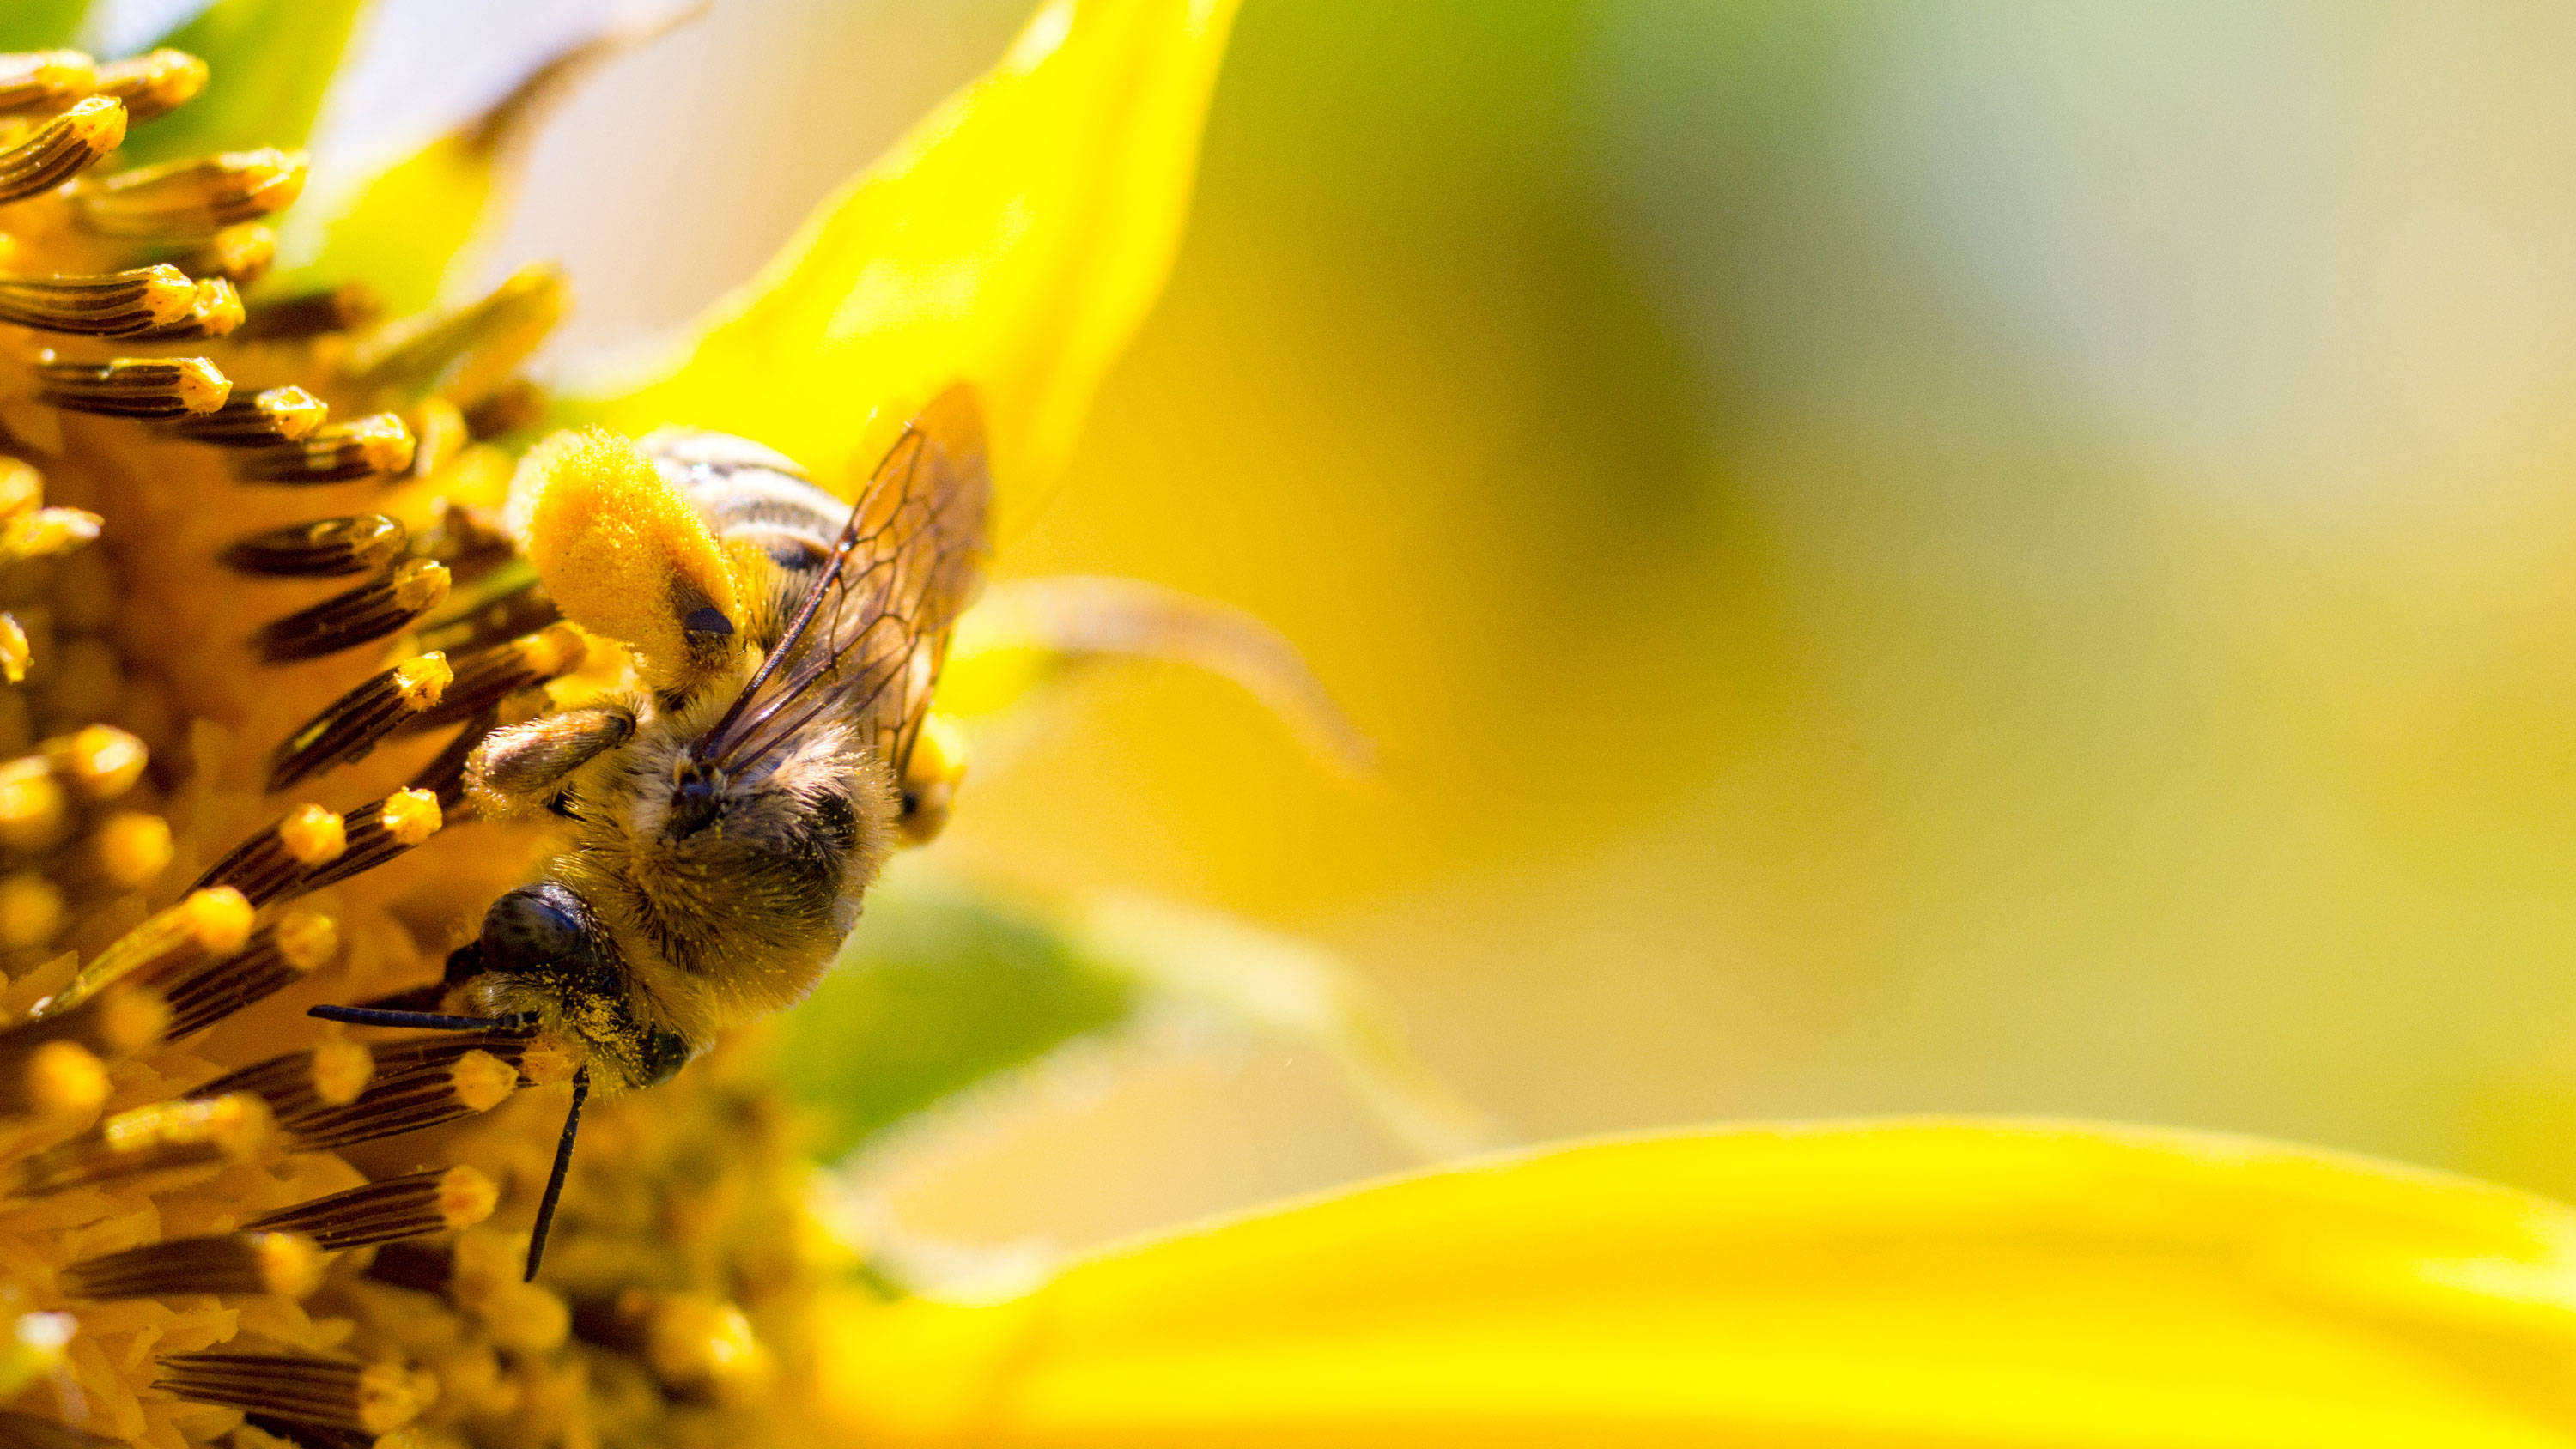 Bee on bright yellow flower